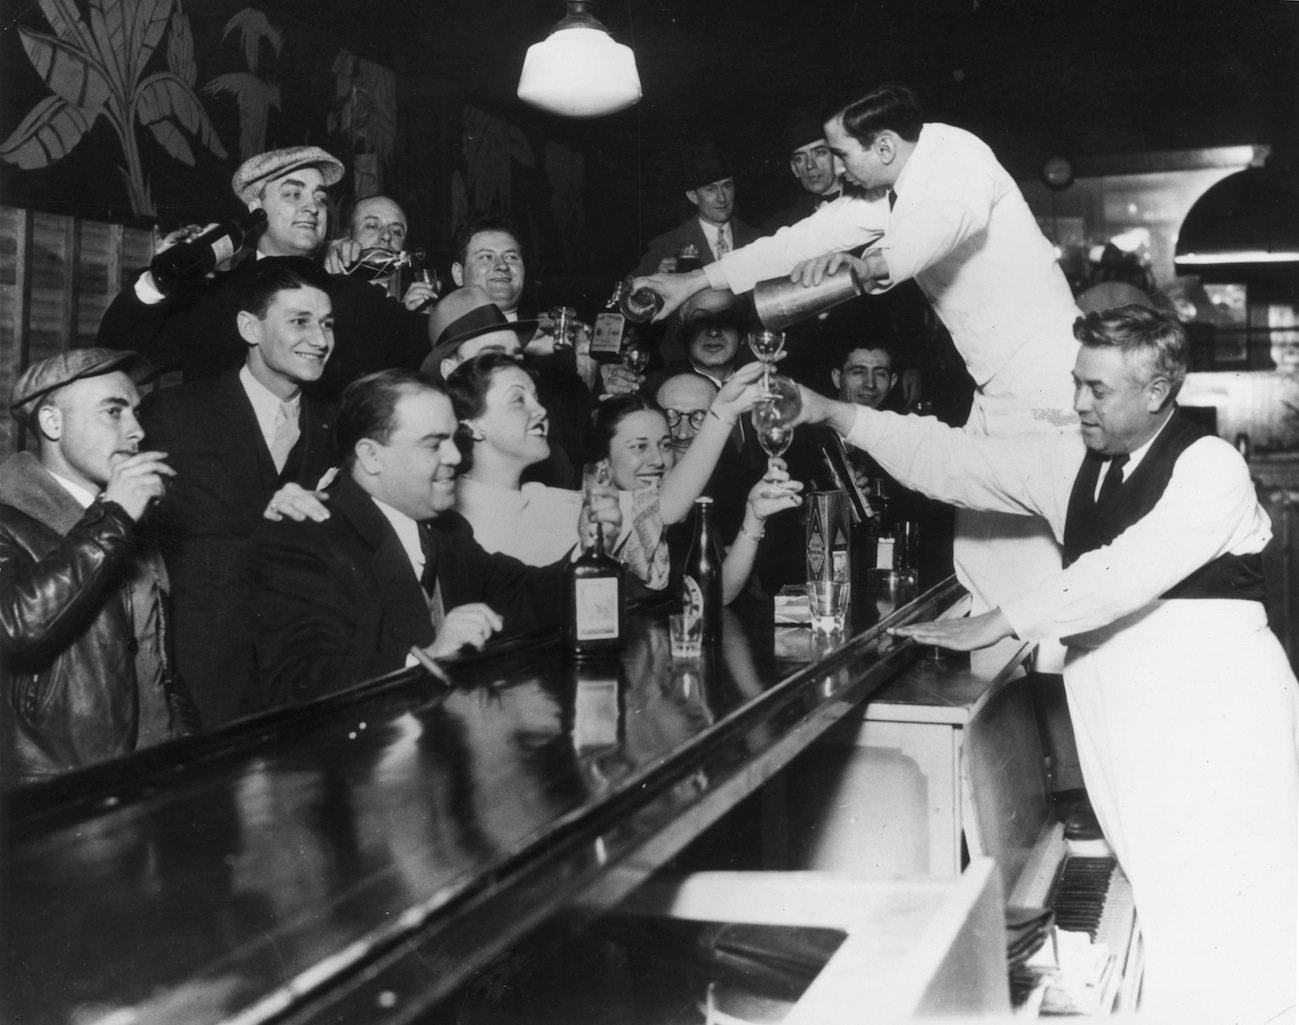 Bartenders at Sloppy Joe's in Chicago bar pour a round of drinks on the house for a large group of smiling customers as it was announced that the 18th Amendment had been repealed